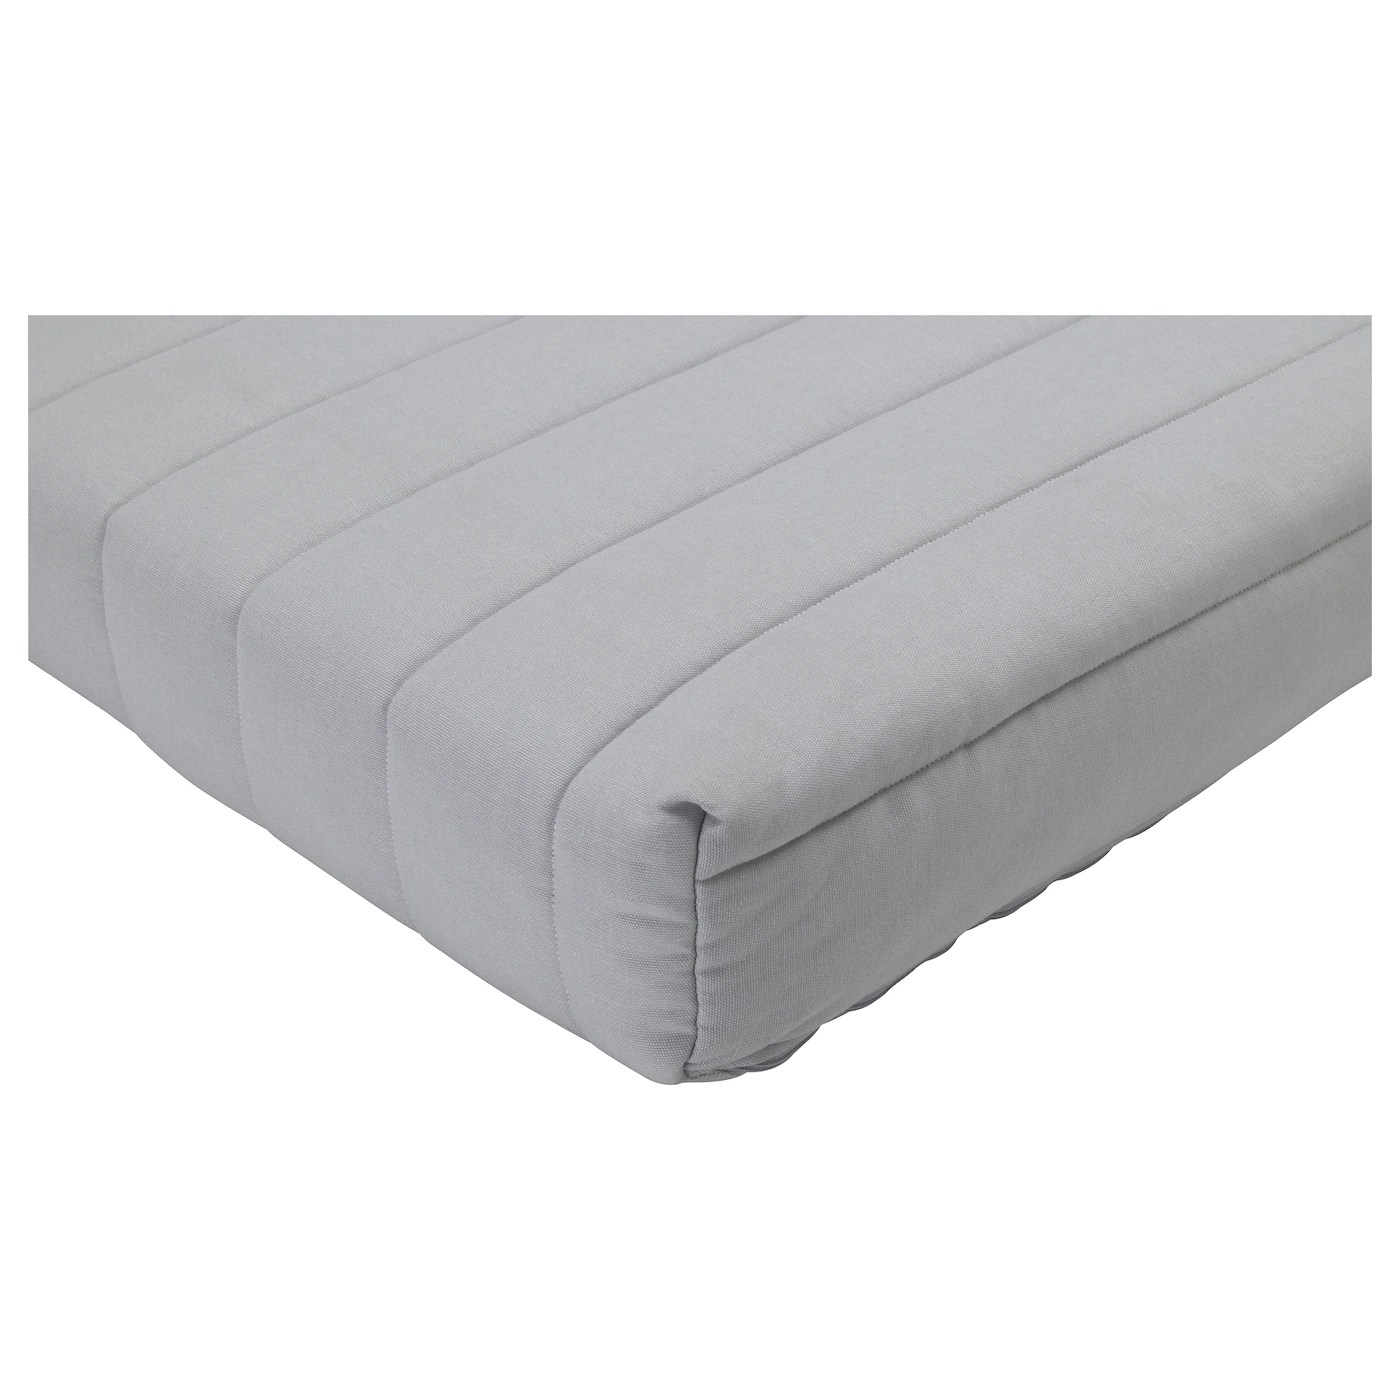 Ikea Mattress Ikea Mattresses Single Double King And Super King